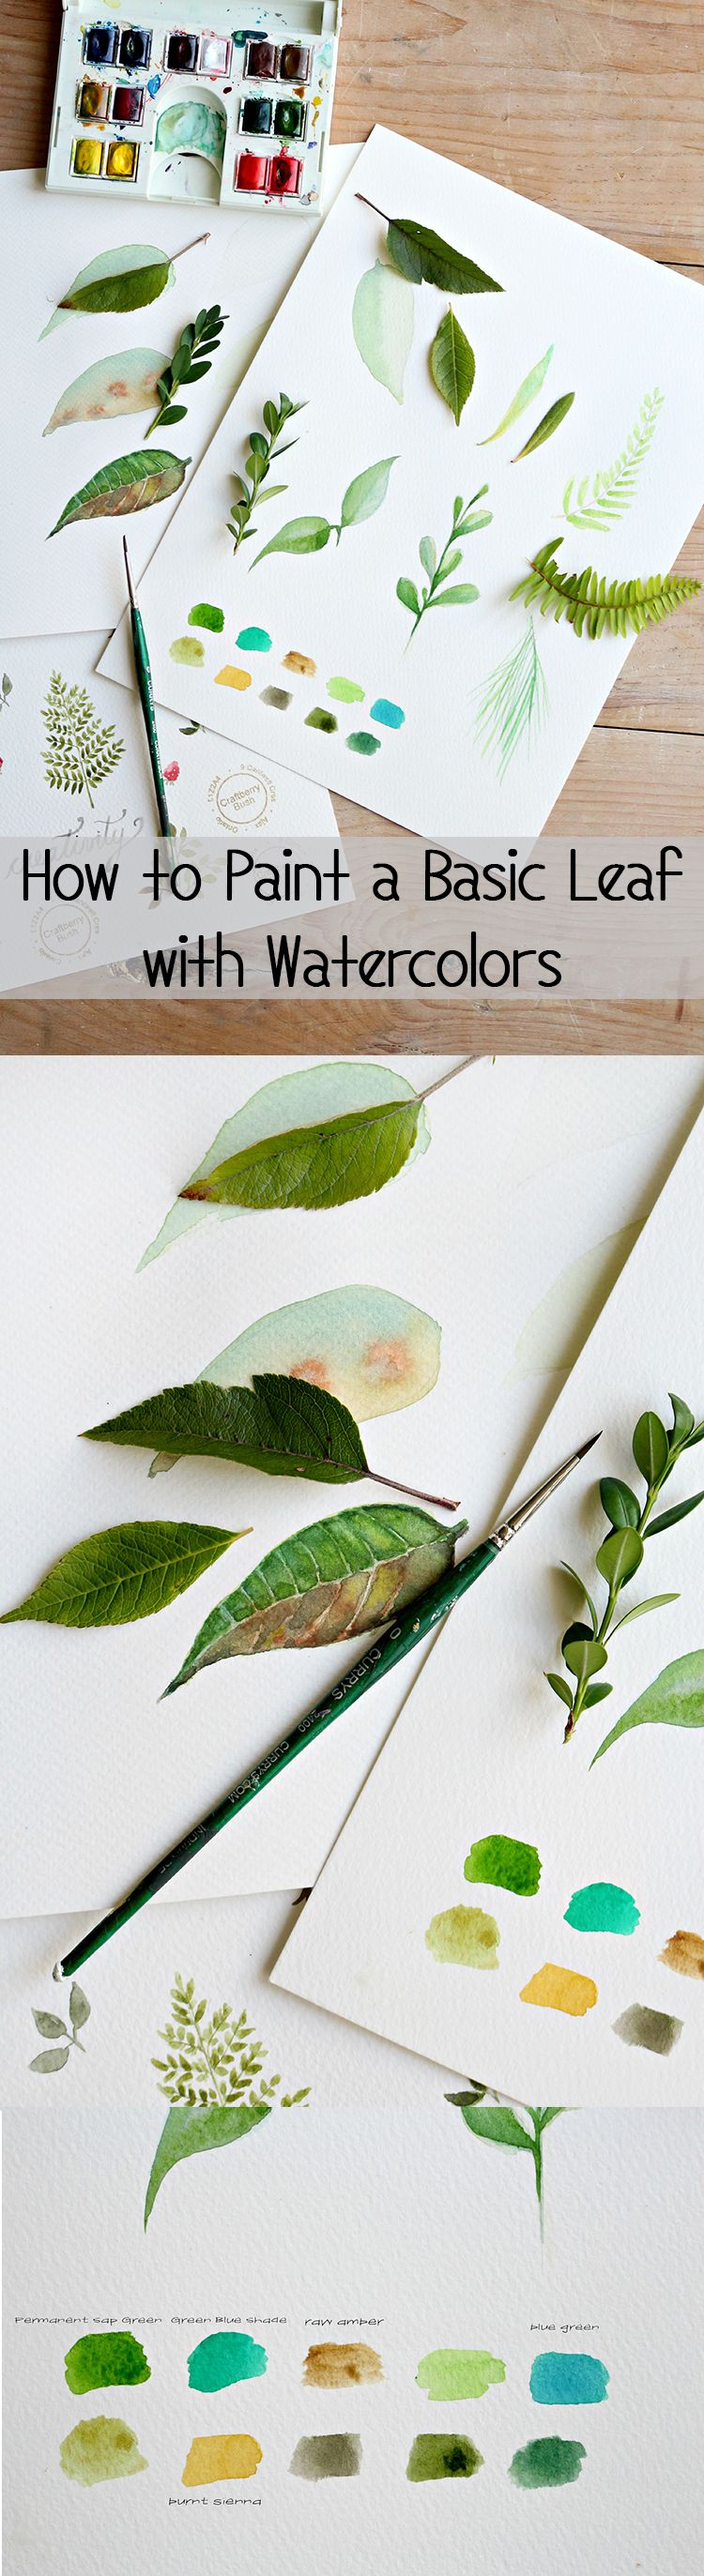 How To Paint A Basic Leaf With Watercolors Watercolor Paintings